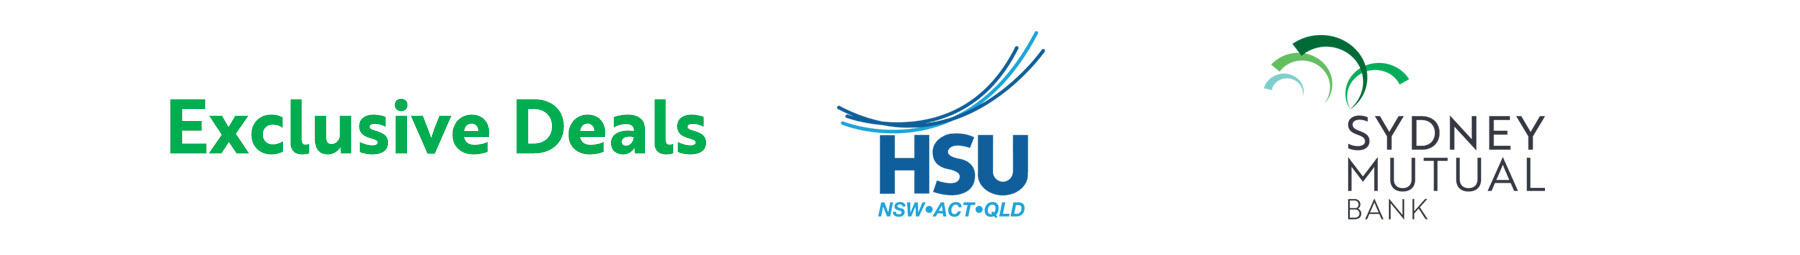 Low rate home loans for HSU members